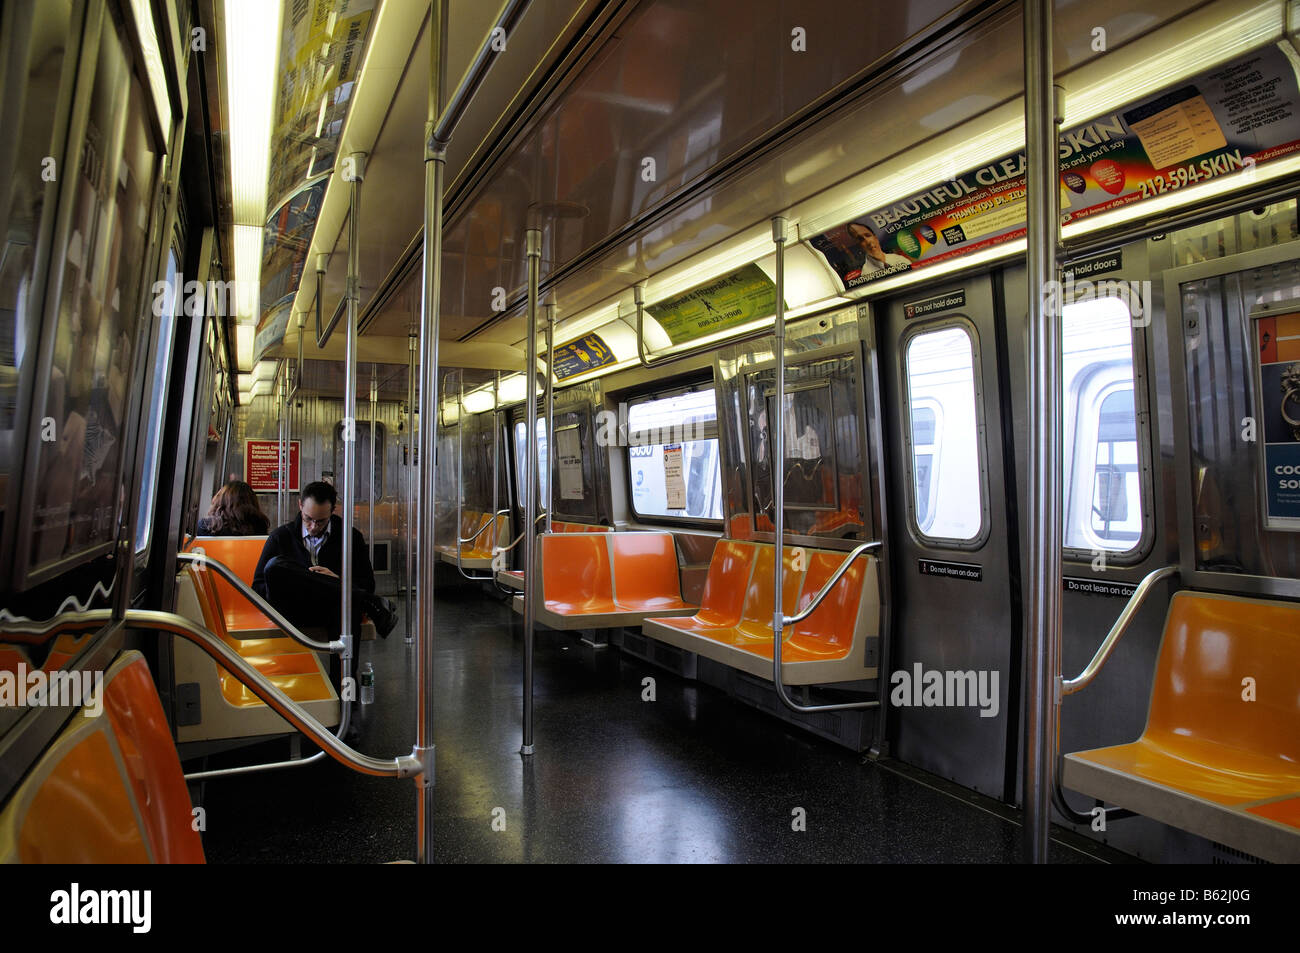 interior of new york subway train america usa stock photo royalty free image 20956336 alamy. Black Bedroom Furniture Sets. Home Design Ideas